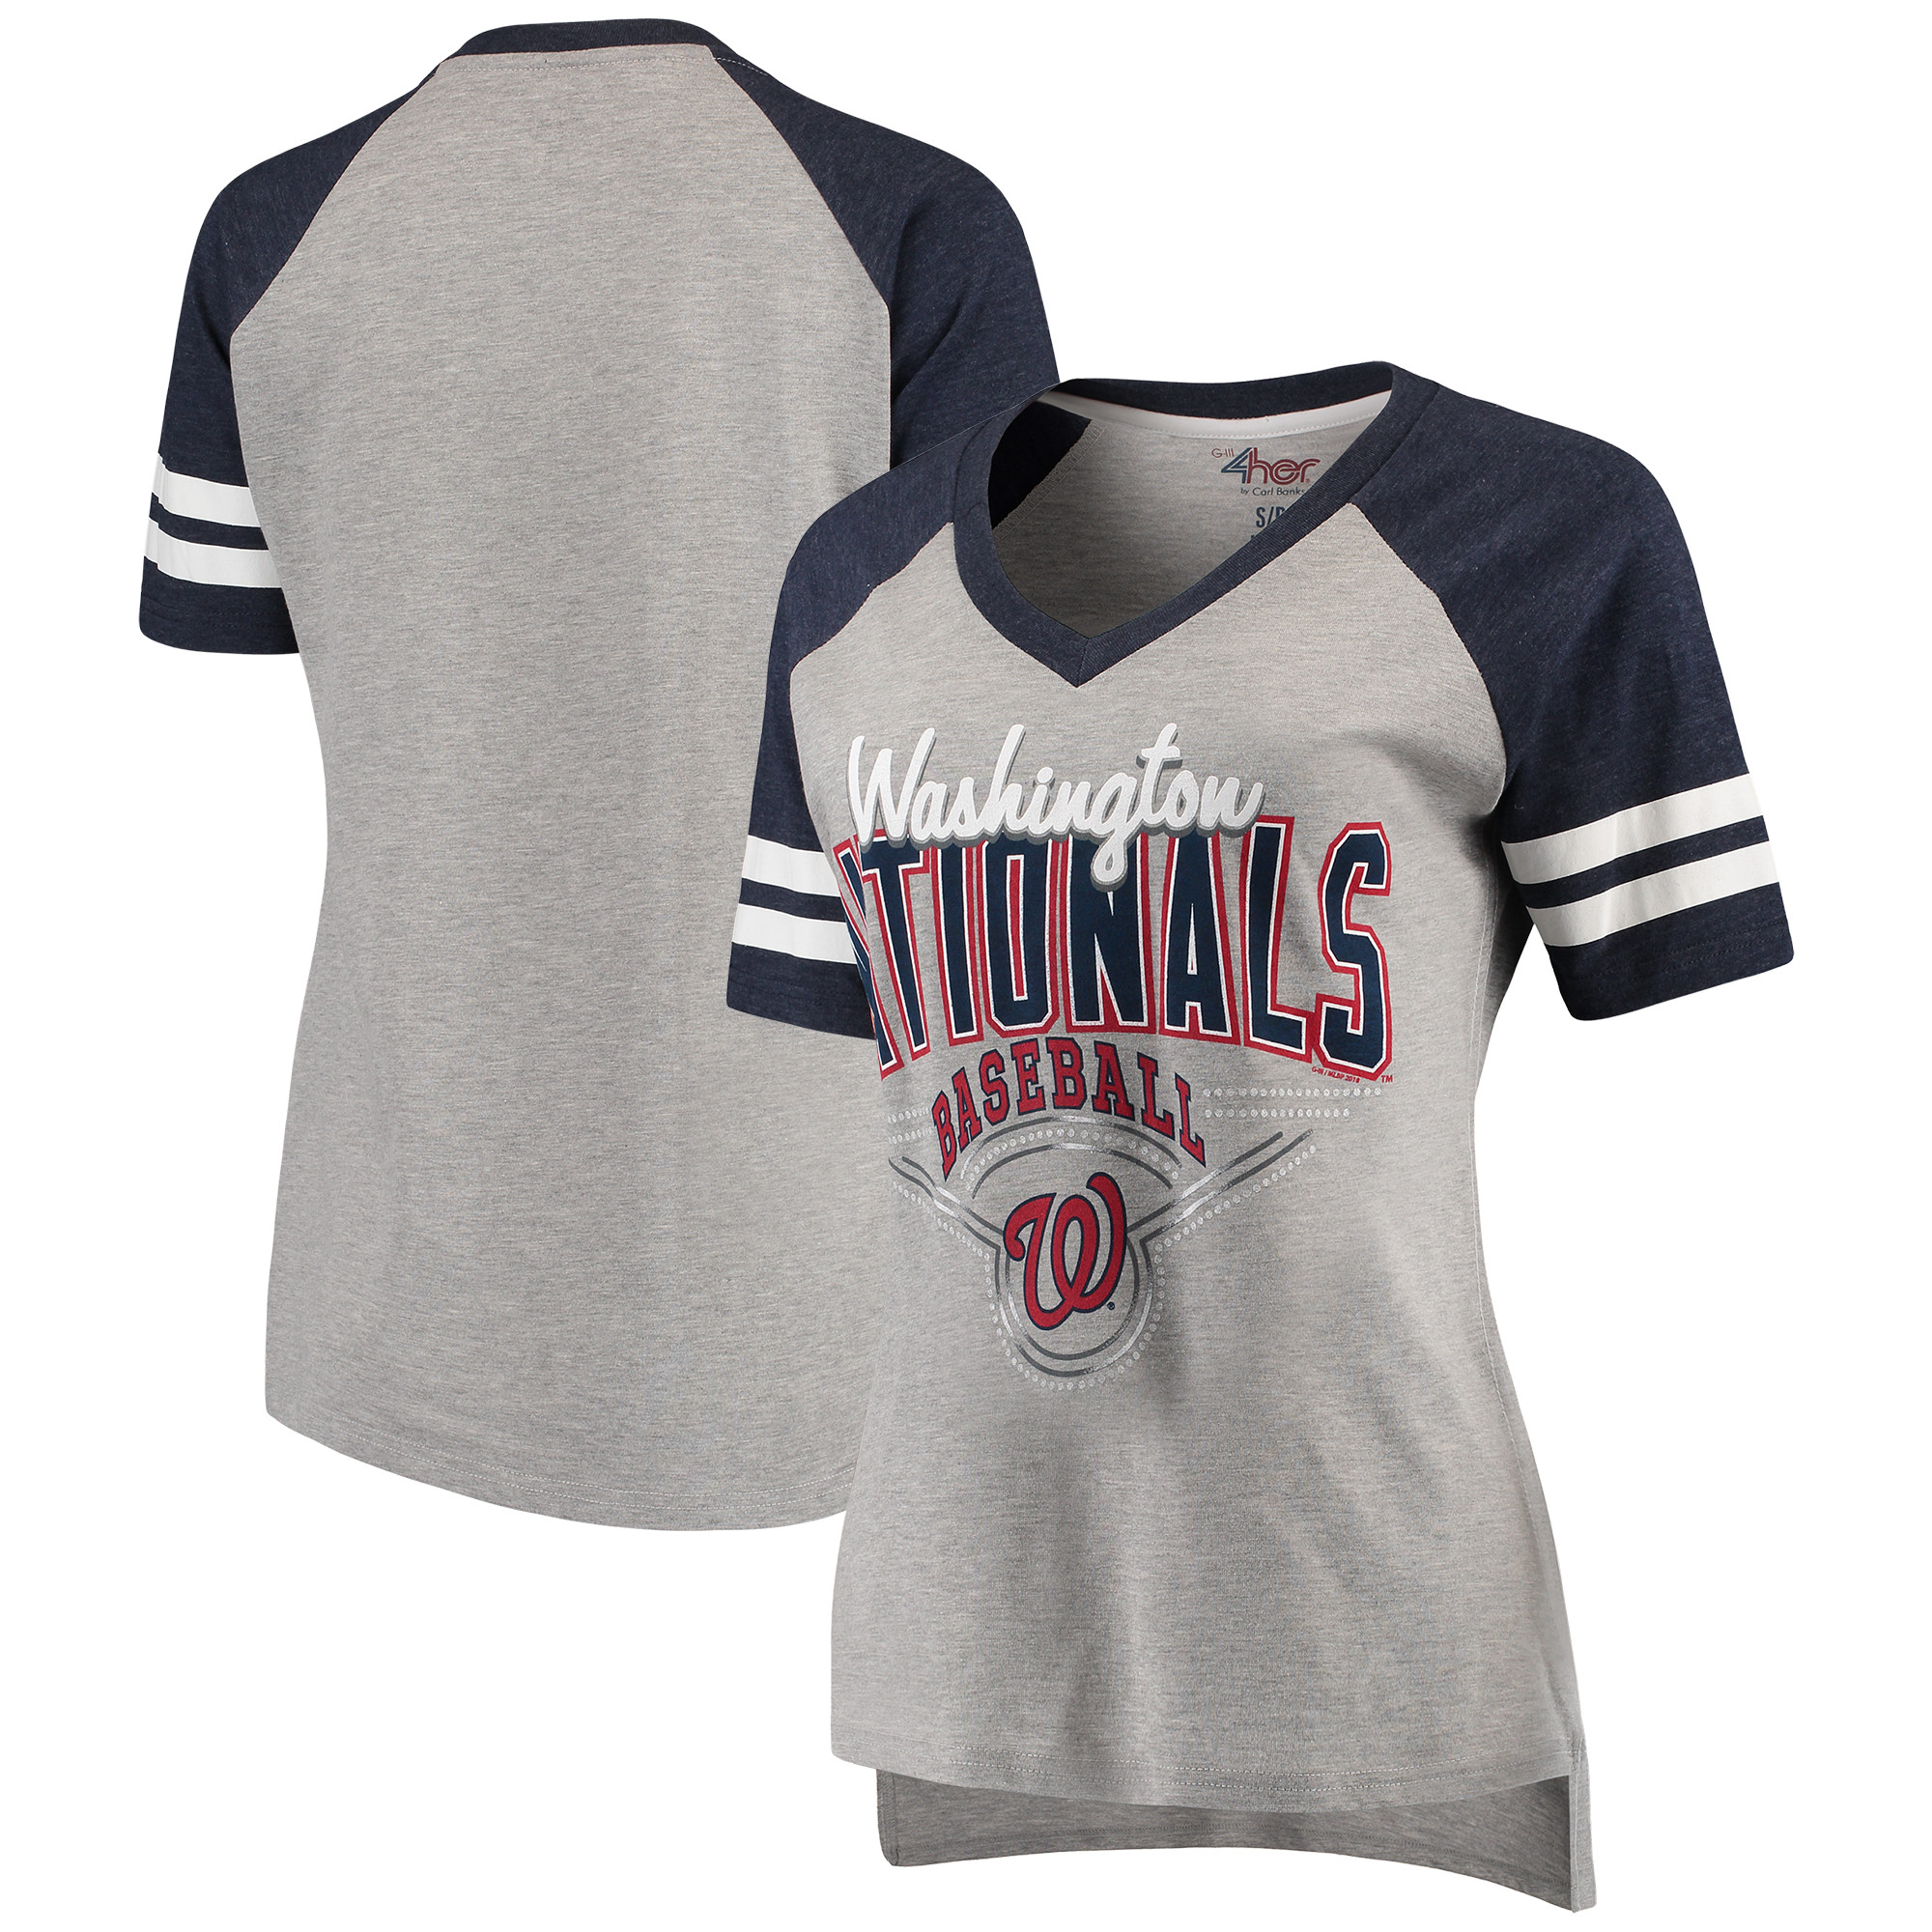 Washington Nationals G-III 4Her by Carl Banks Women's Goal Line V-Neck T-Shirt - Heathered Gray/Navy